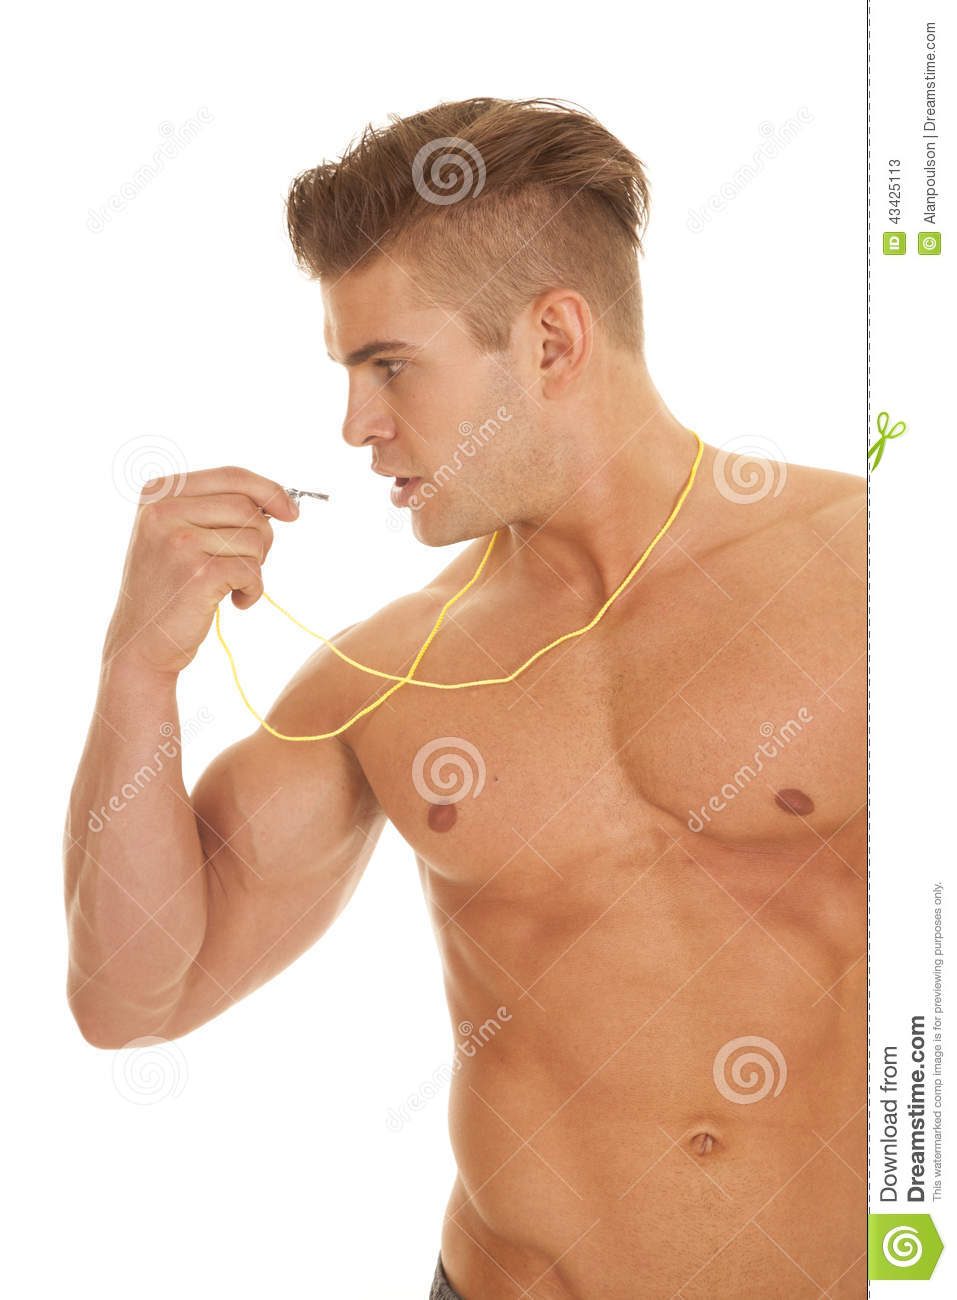 Man No Shirt With Whistle Side Stock Image Image Of Lifestyles